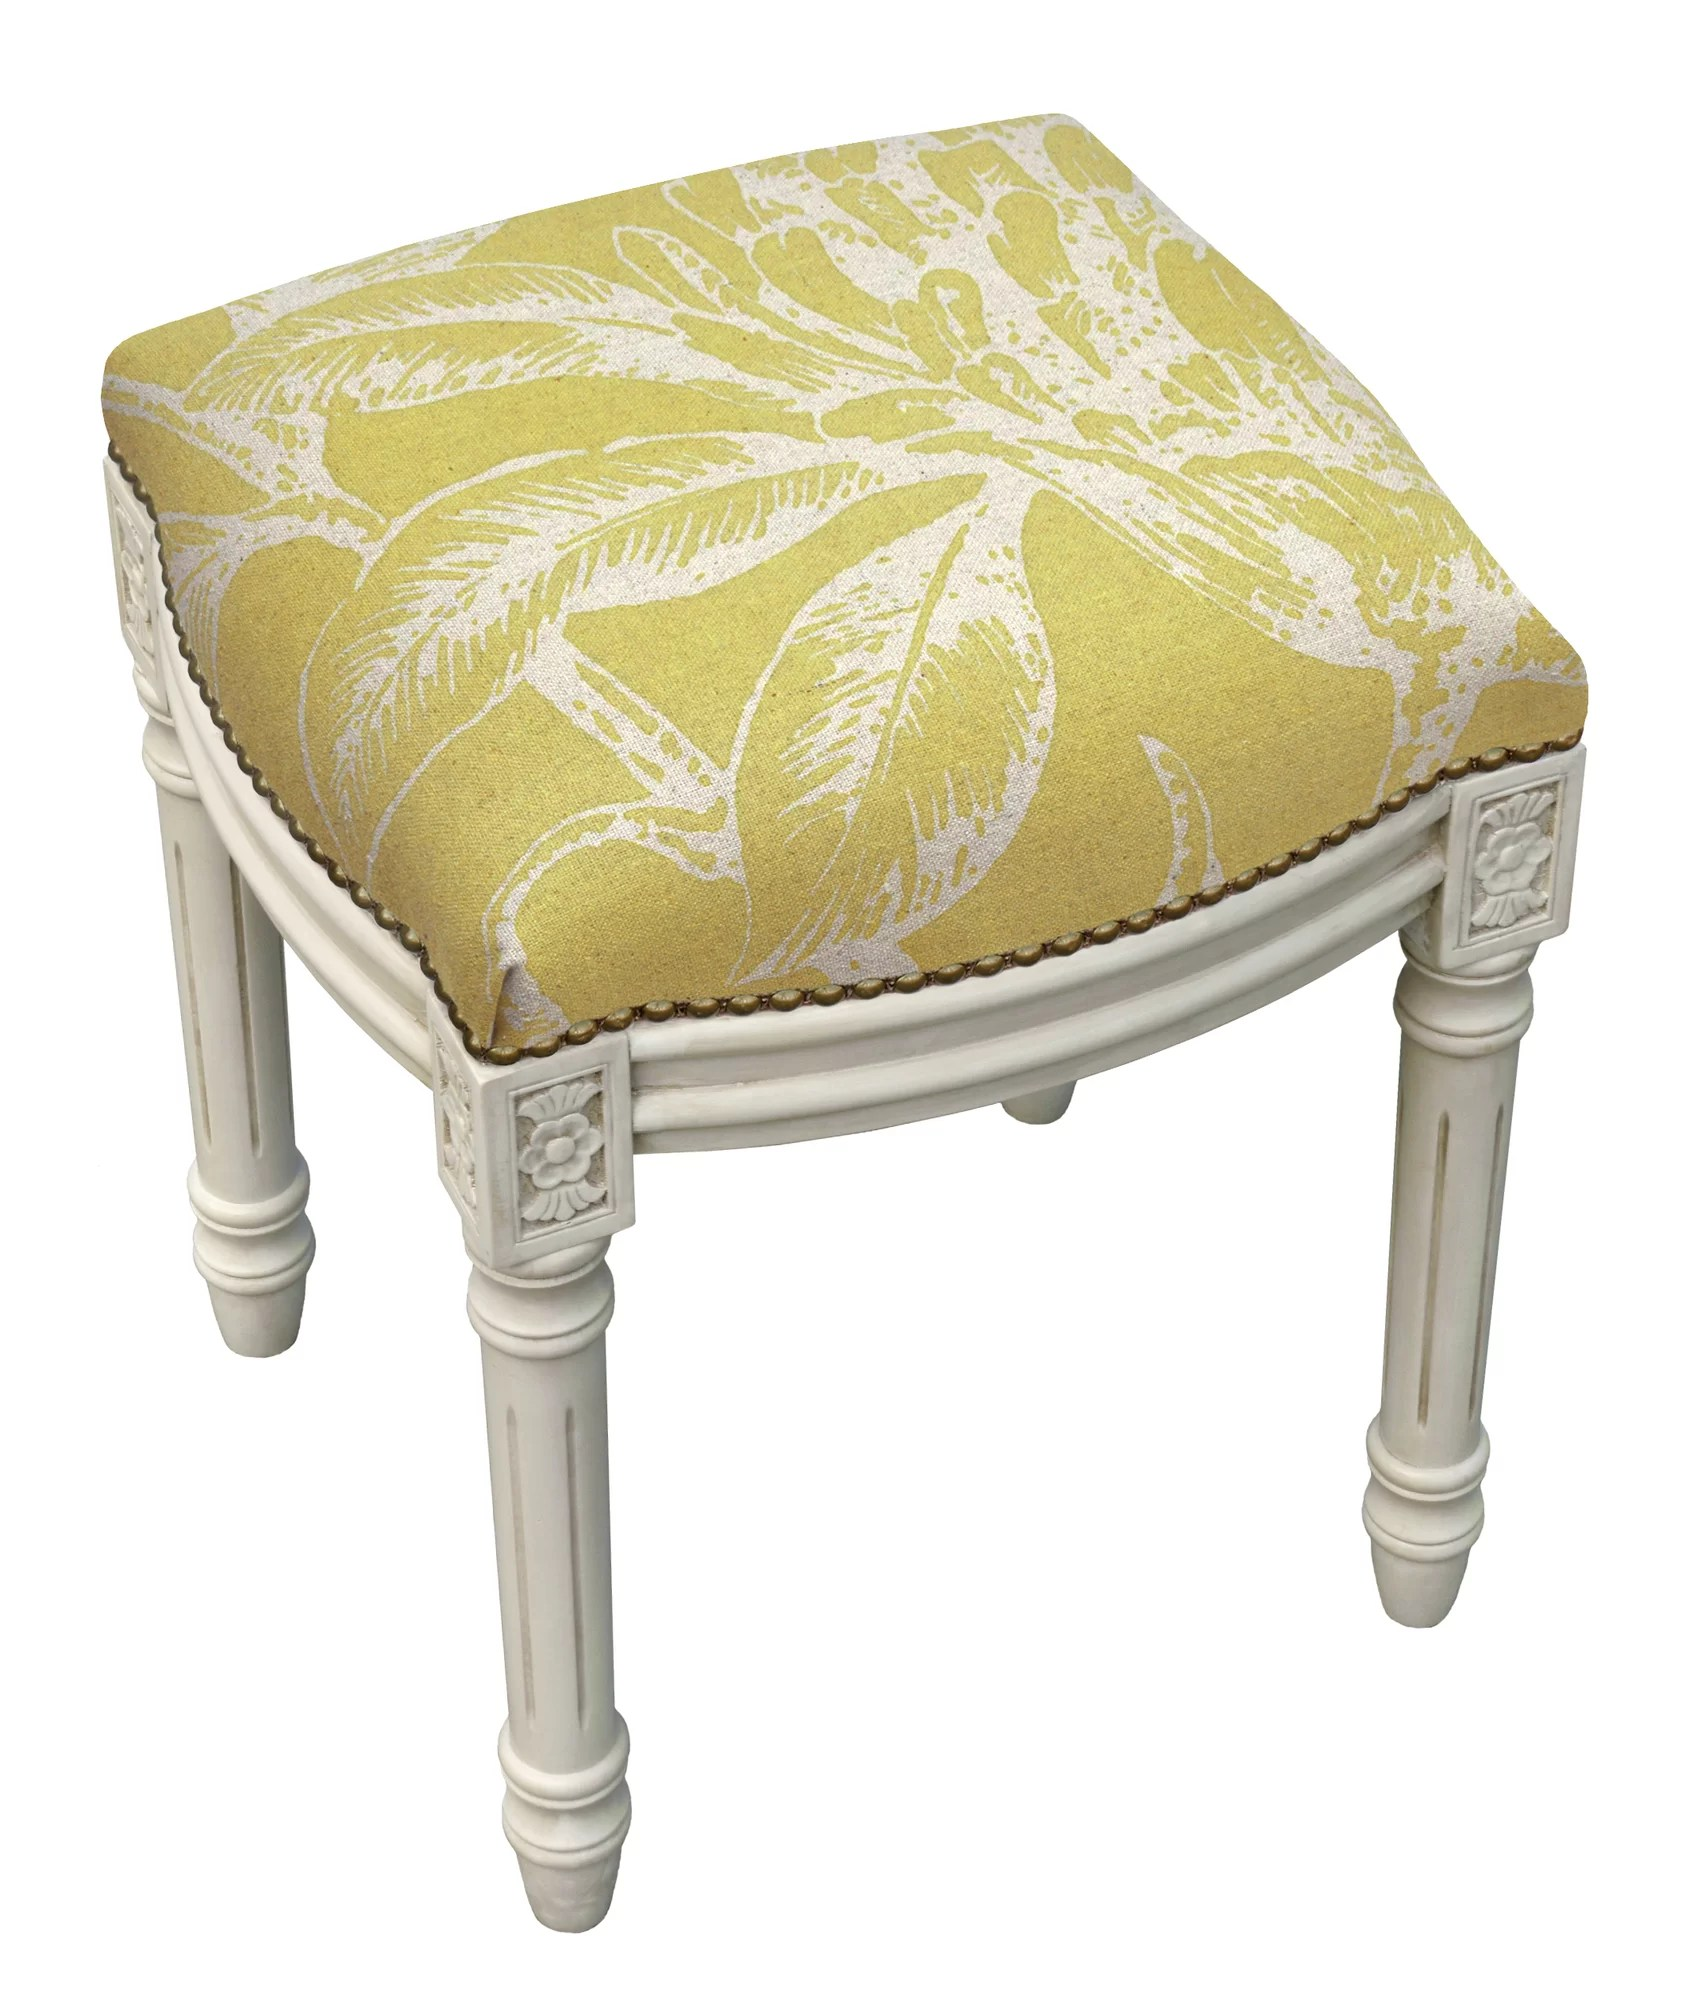 Upholstered Vanity Chair 123 Creations Floral Coral Botanical Linen Upholstered